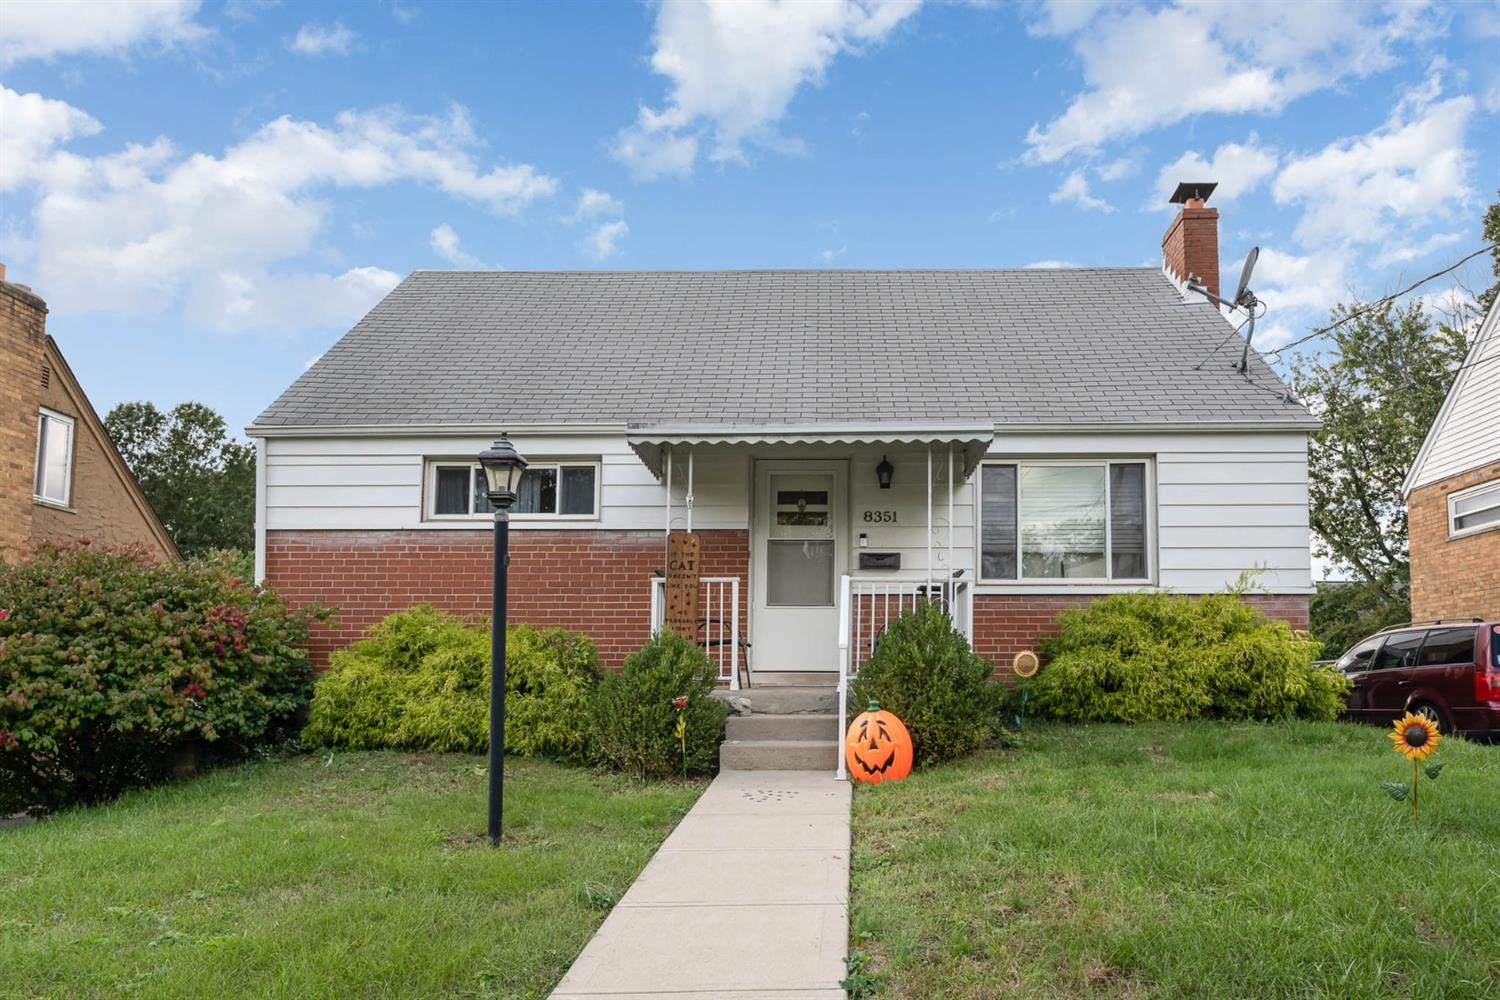 8351 Firshade Terrace, Colerain Twp, Ohio 45239, 3 Bedrooms Bedrooms, 7 Rooms Rooms,1 BathroomBathrooms,Single Family Residence,For Sale,Firshade,1718575